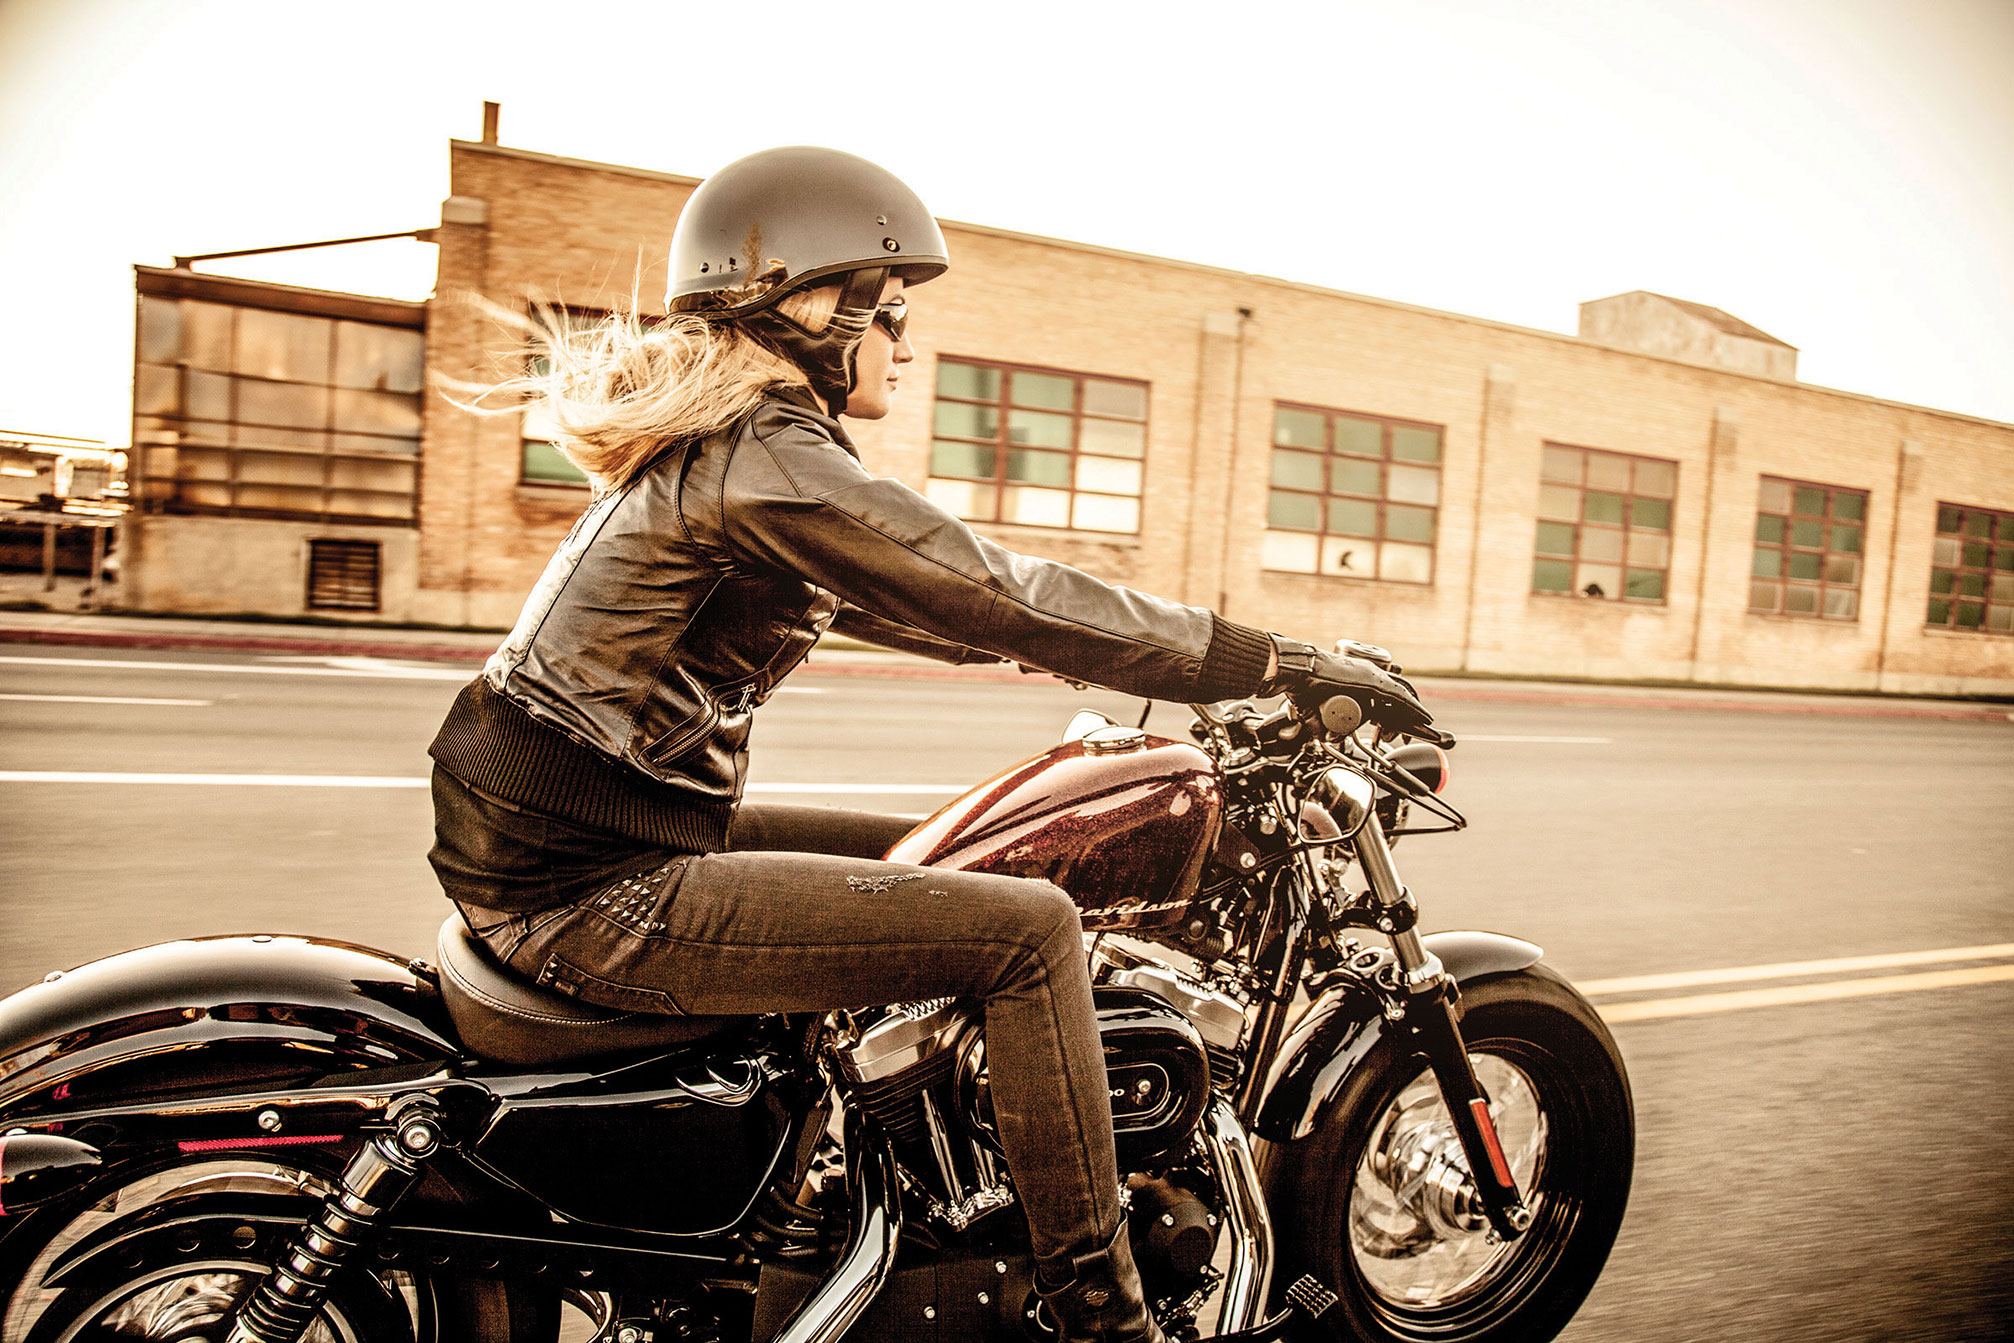 2014 Harley Davidson XL1200X Forty-Eight T Wallpaper